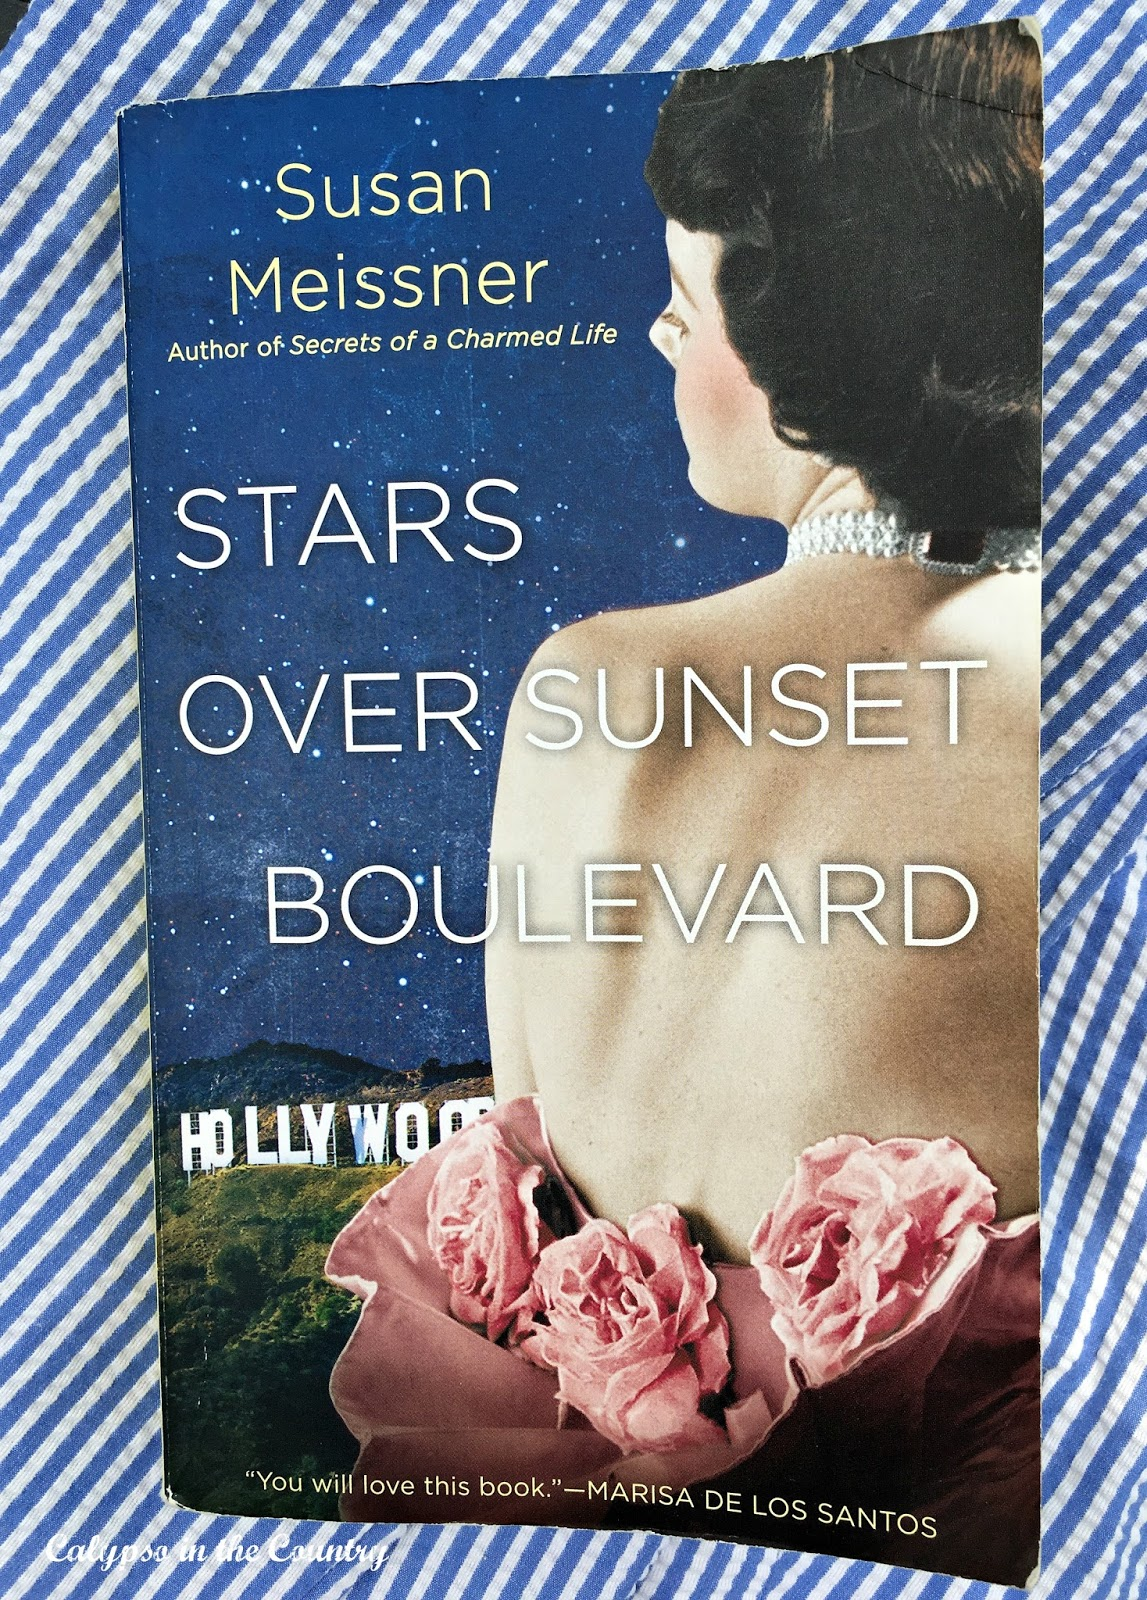 Starts Over Sunset Boulevard - Historical Fiction about the filming of Gone with the Wind